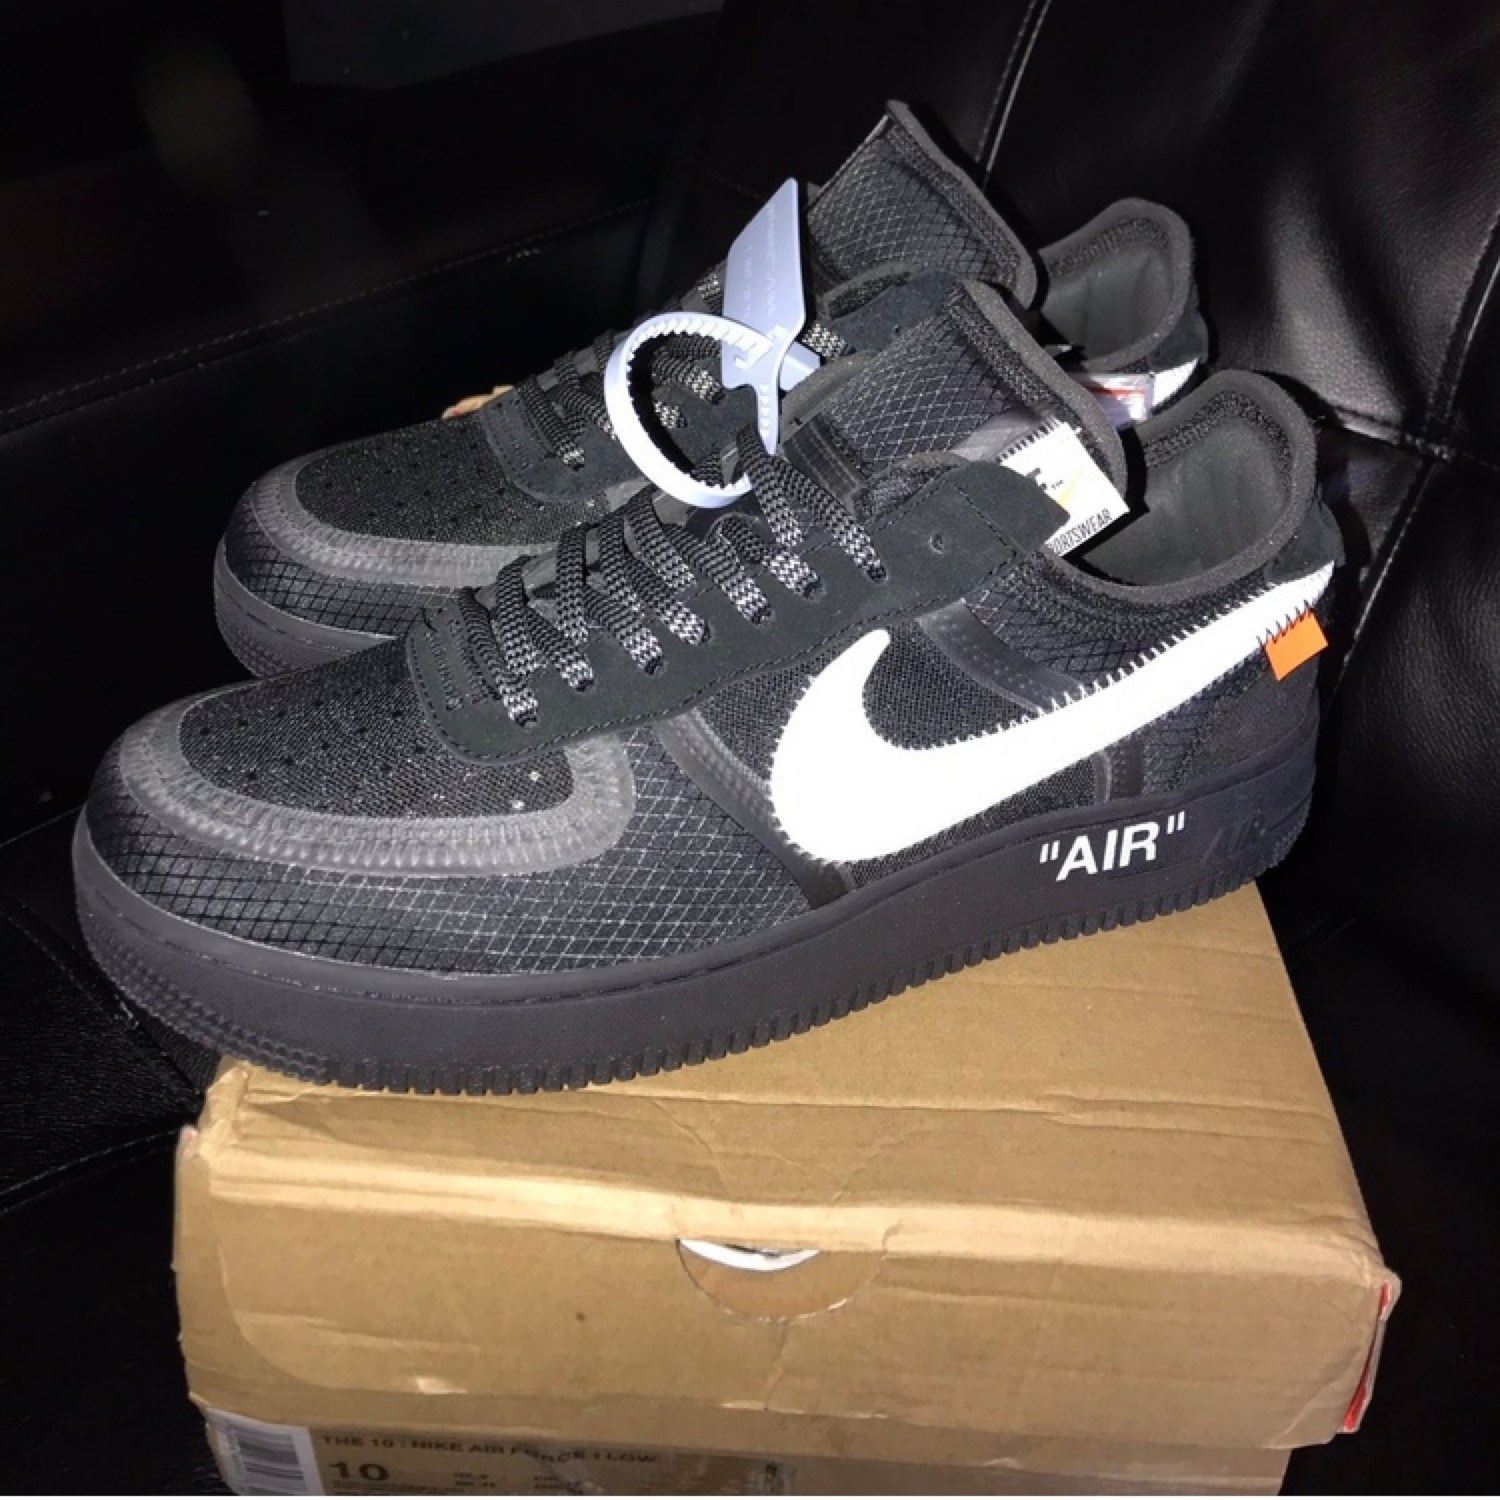 Off White x Nike Air Force 1 Low Black White